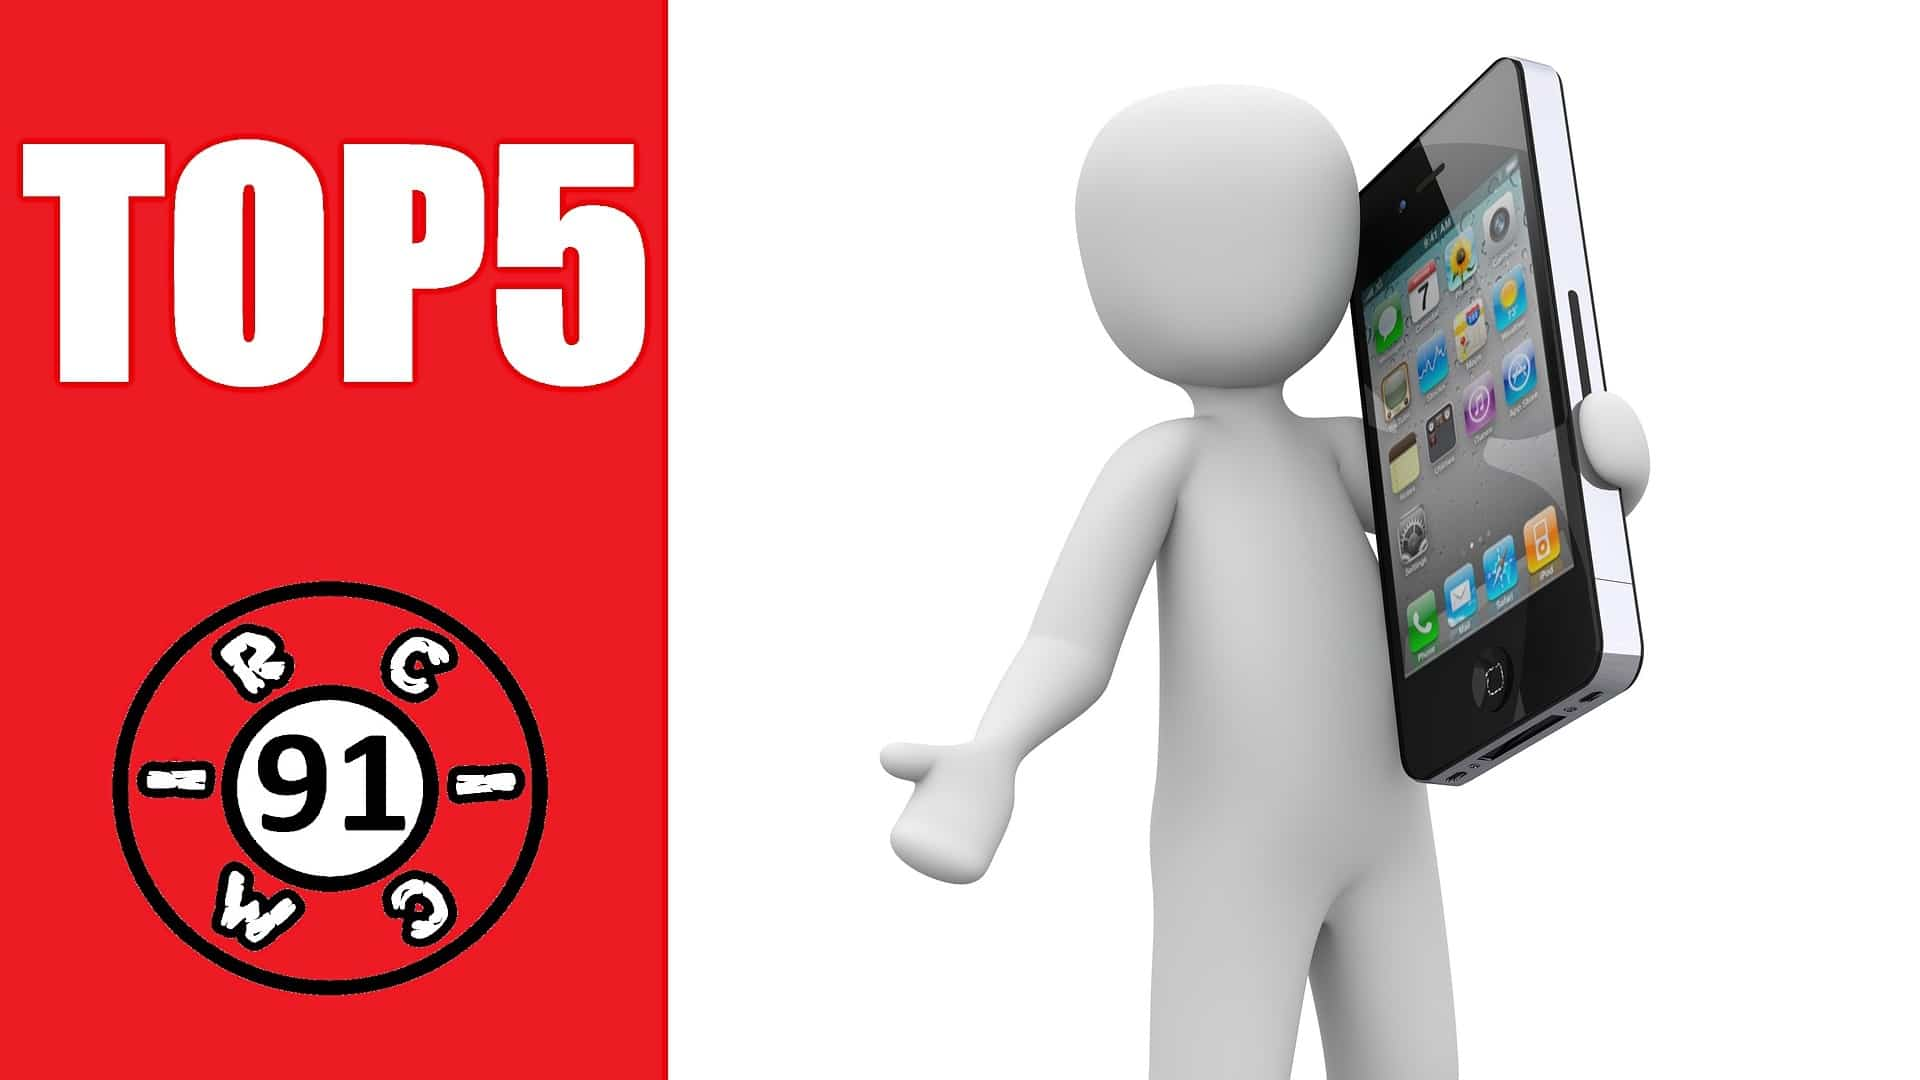 Top 5 Mobile Phones for the year 2020